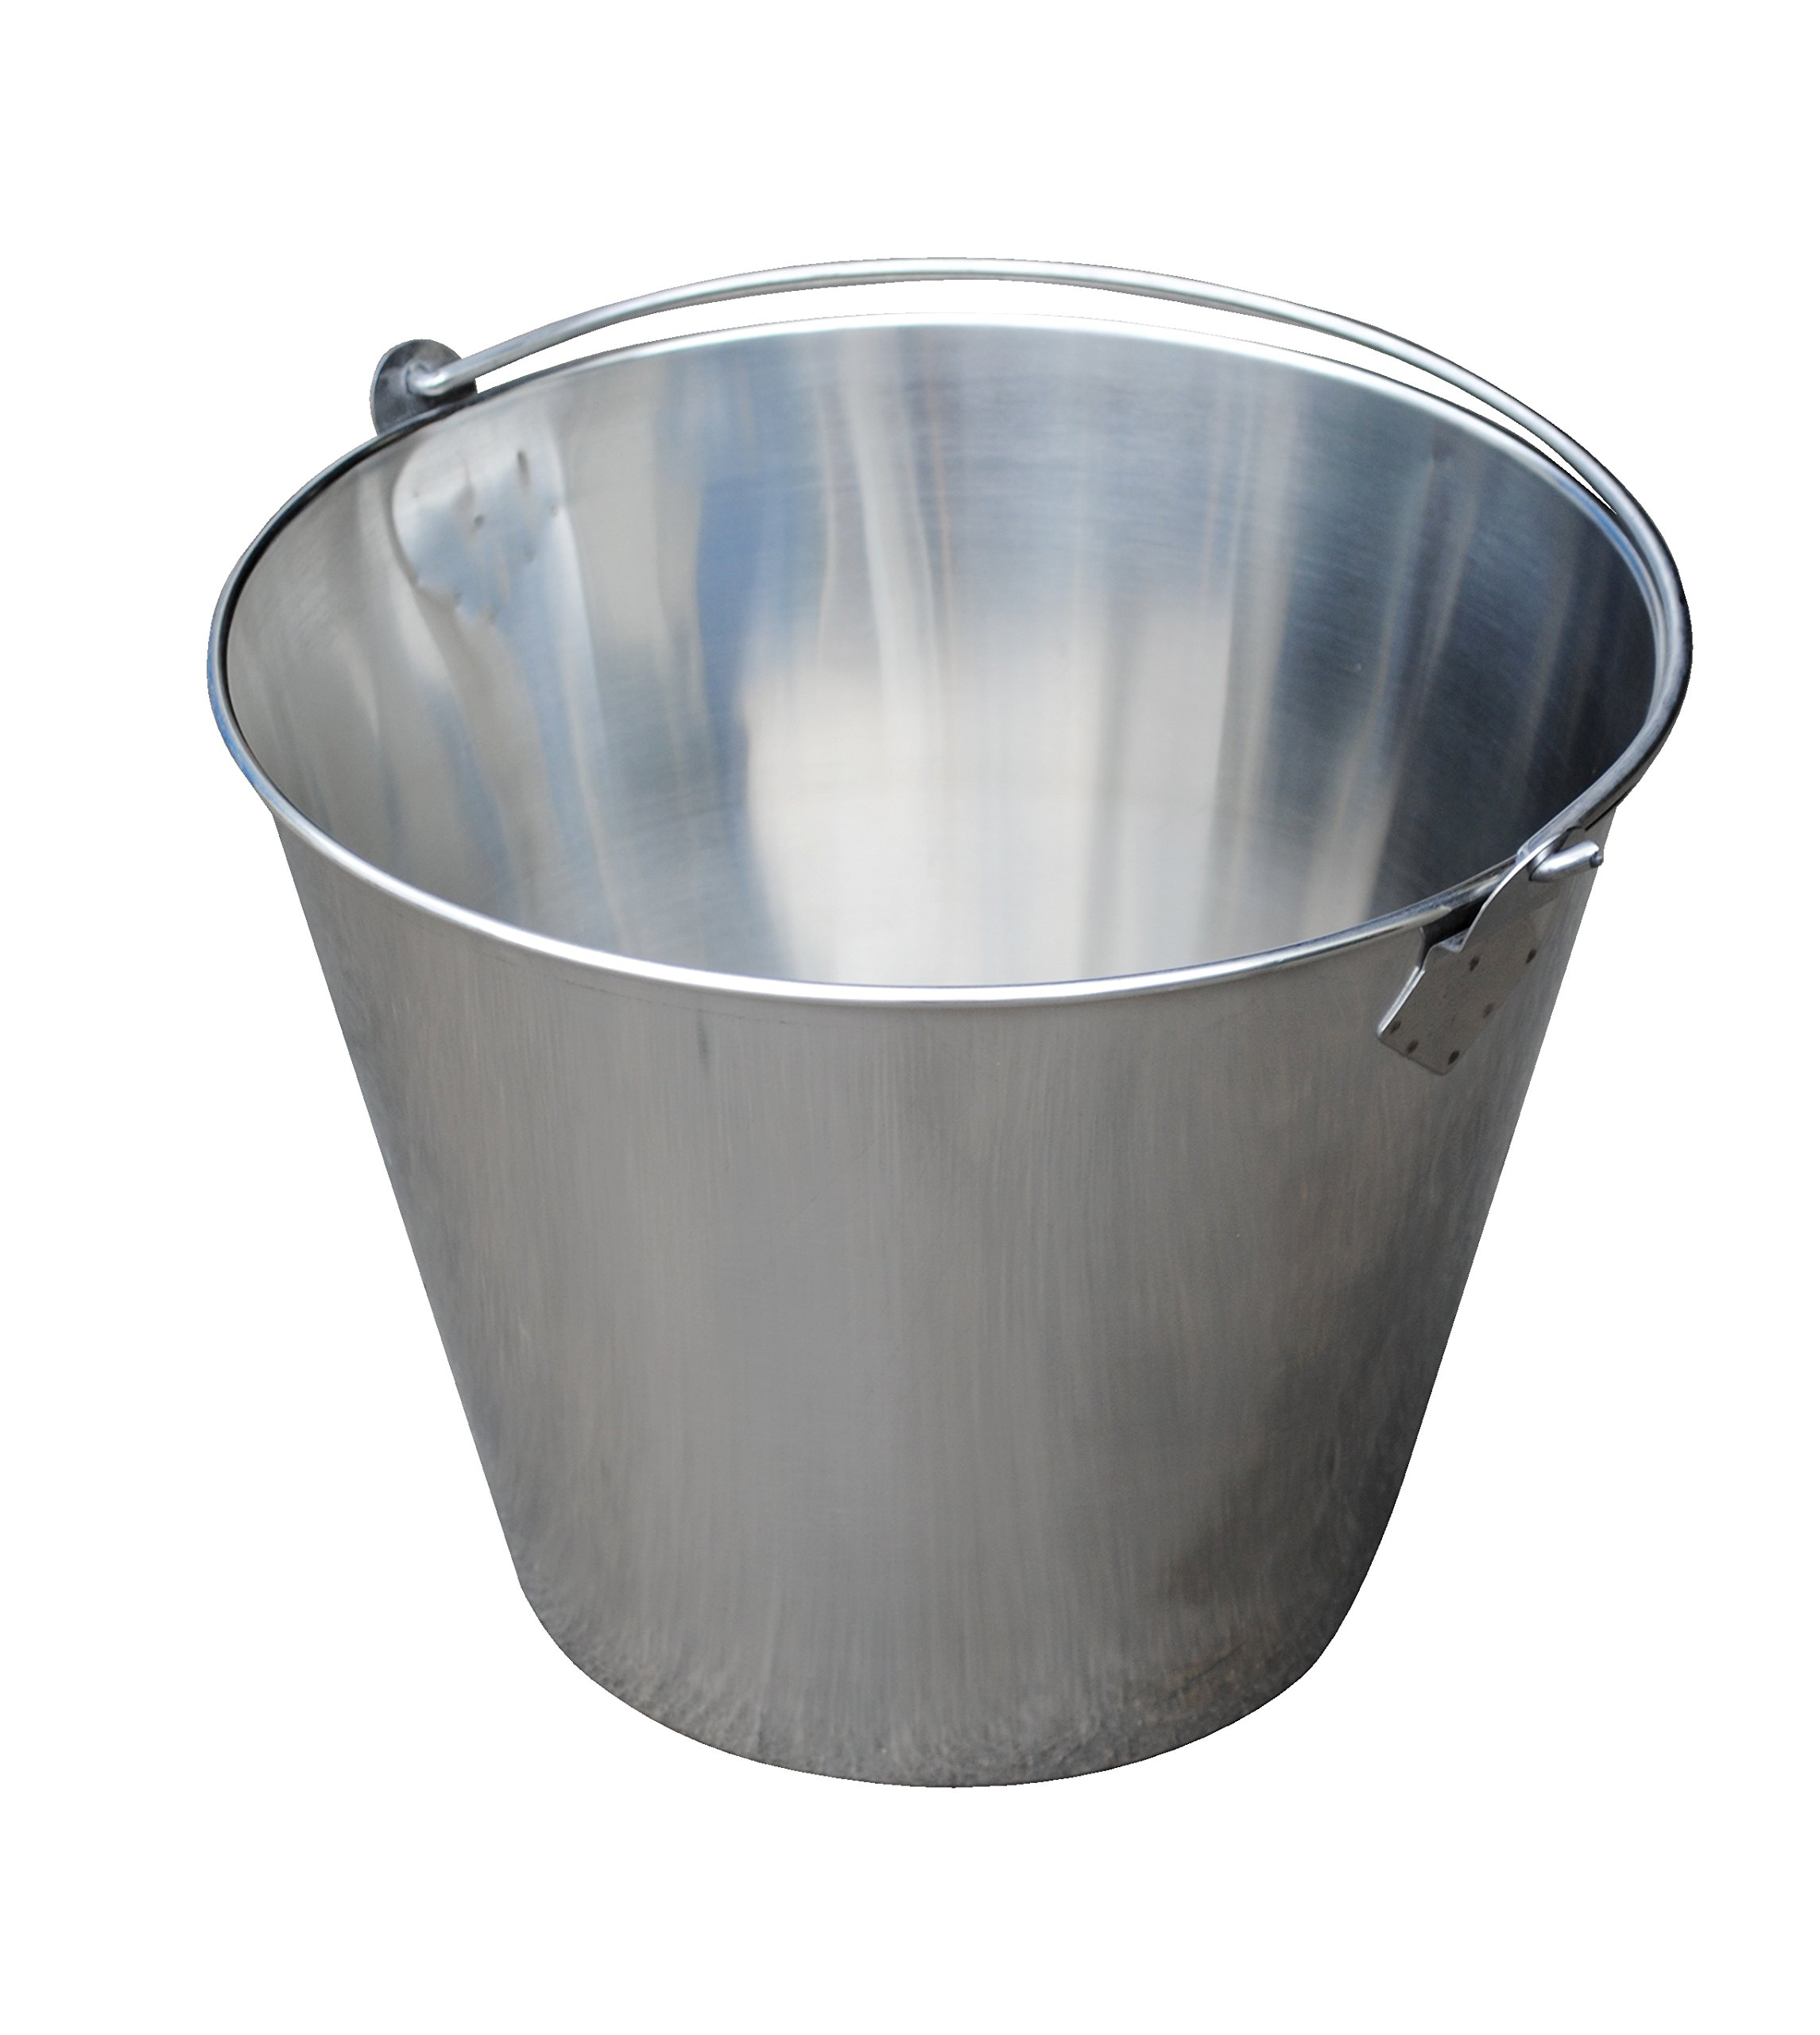 Vestil BKT-SS-325 Stainless Steel Bucket, 10'' Depth, 3.25 gallon, 88 pound Capacity by Vestil